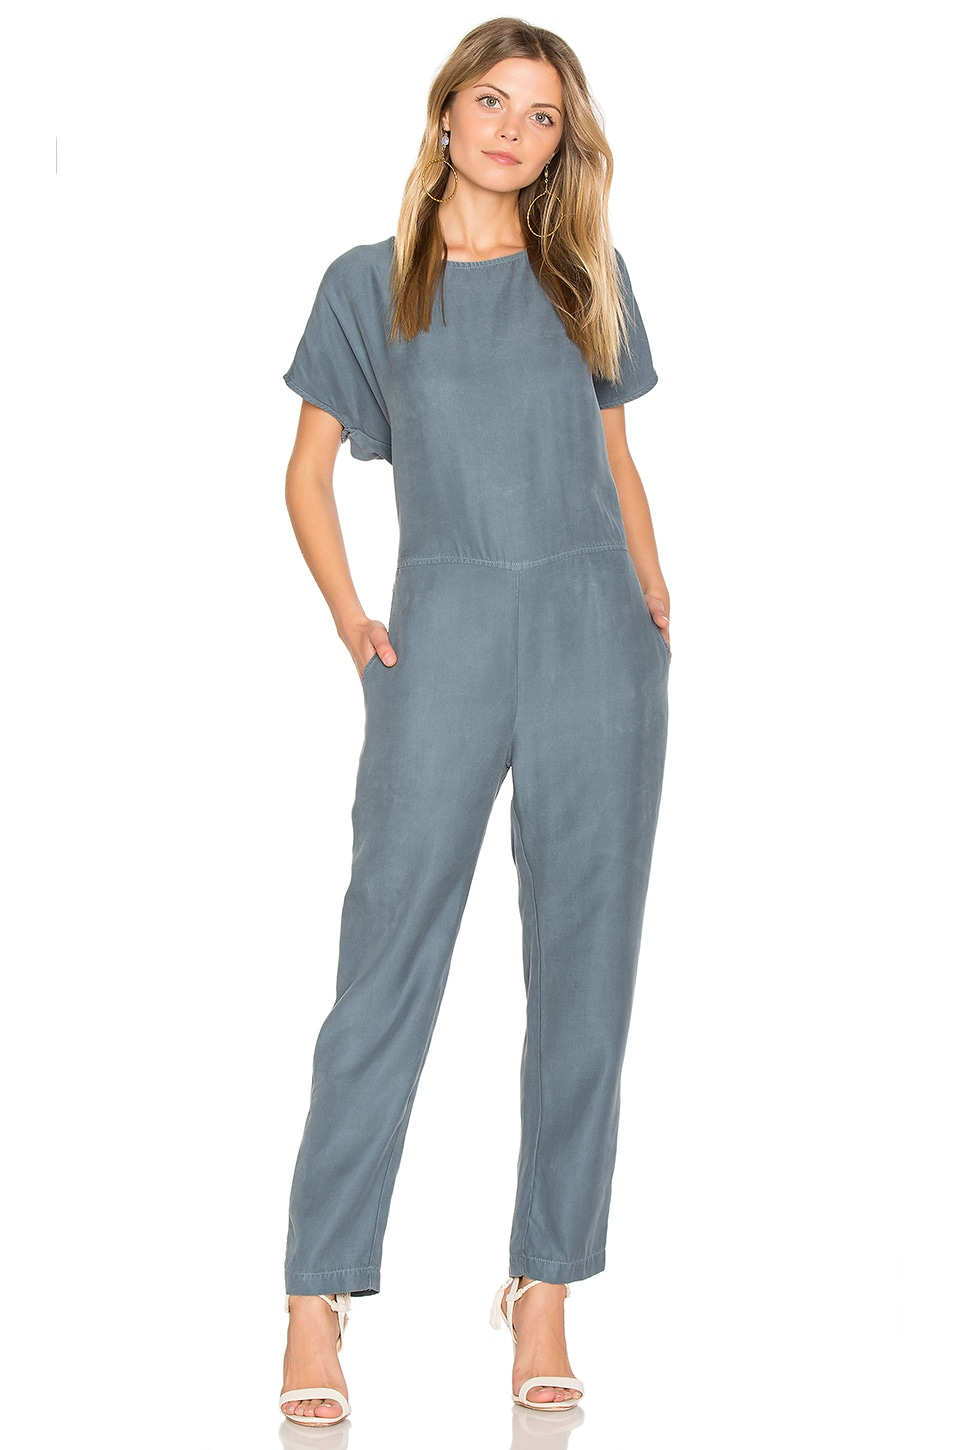 Photo of Night Out Jumpsuit by York Street on sale